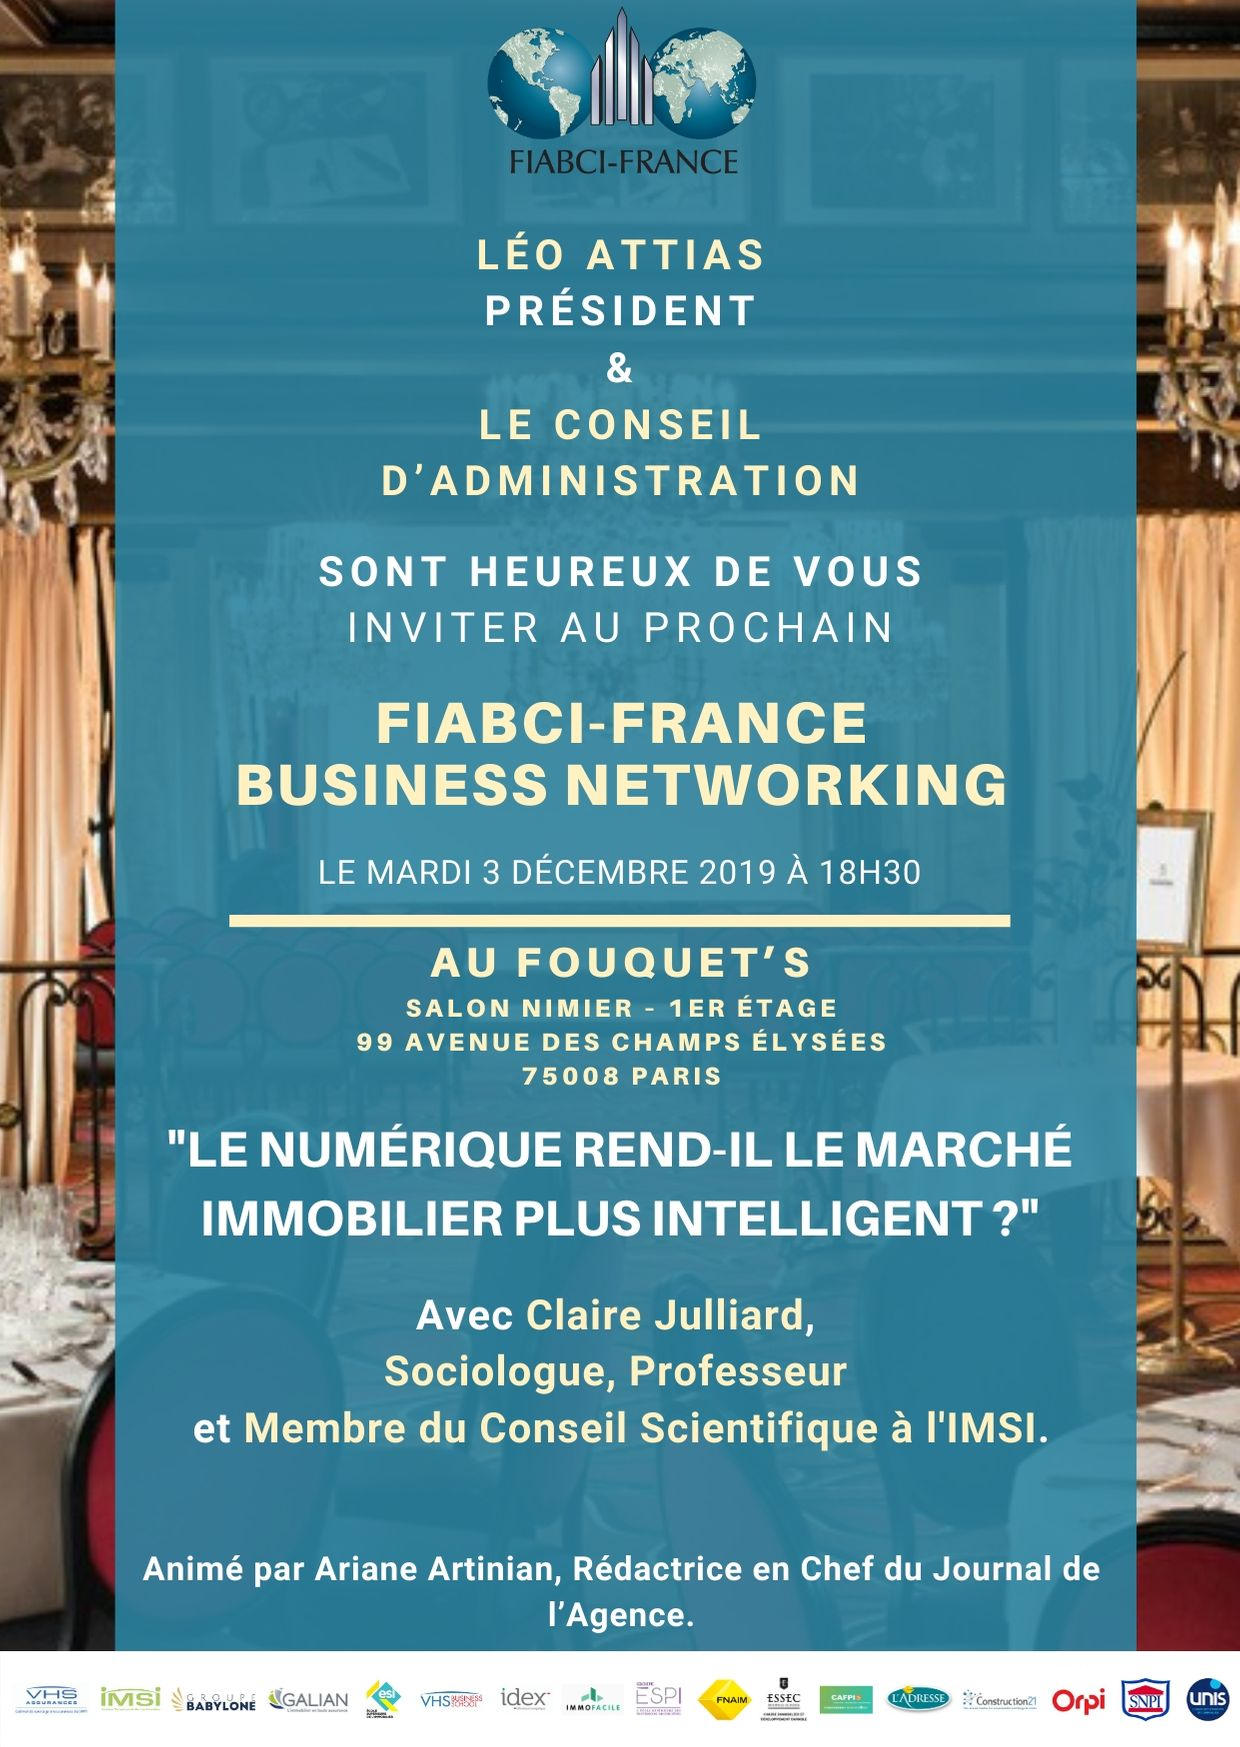 Business Networking Fiabci France du mardi 3 décembre 2019